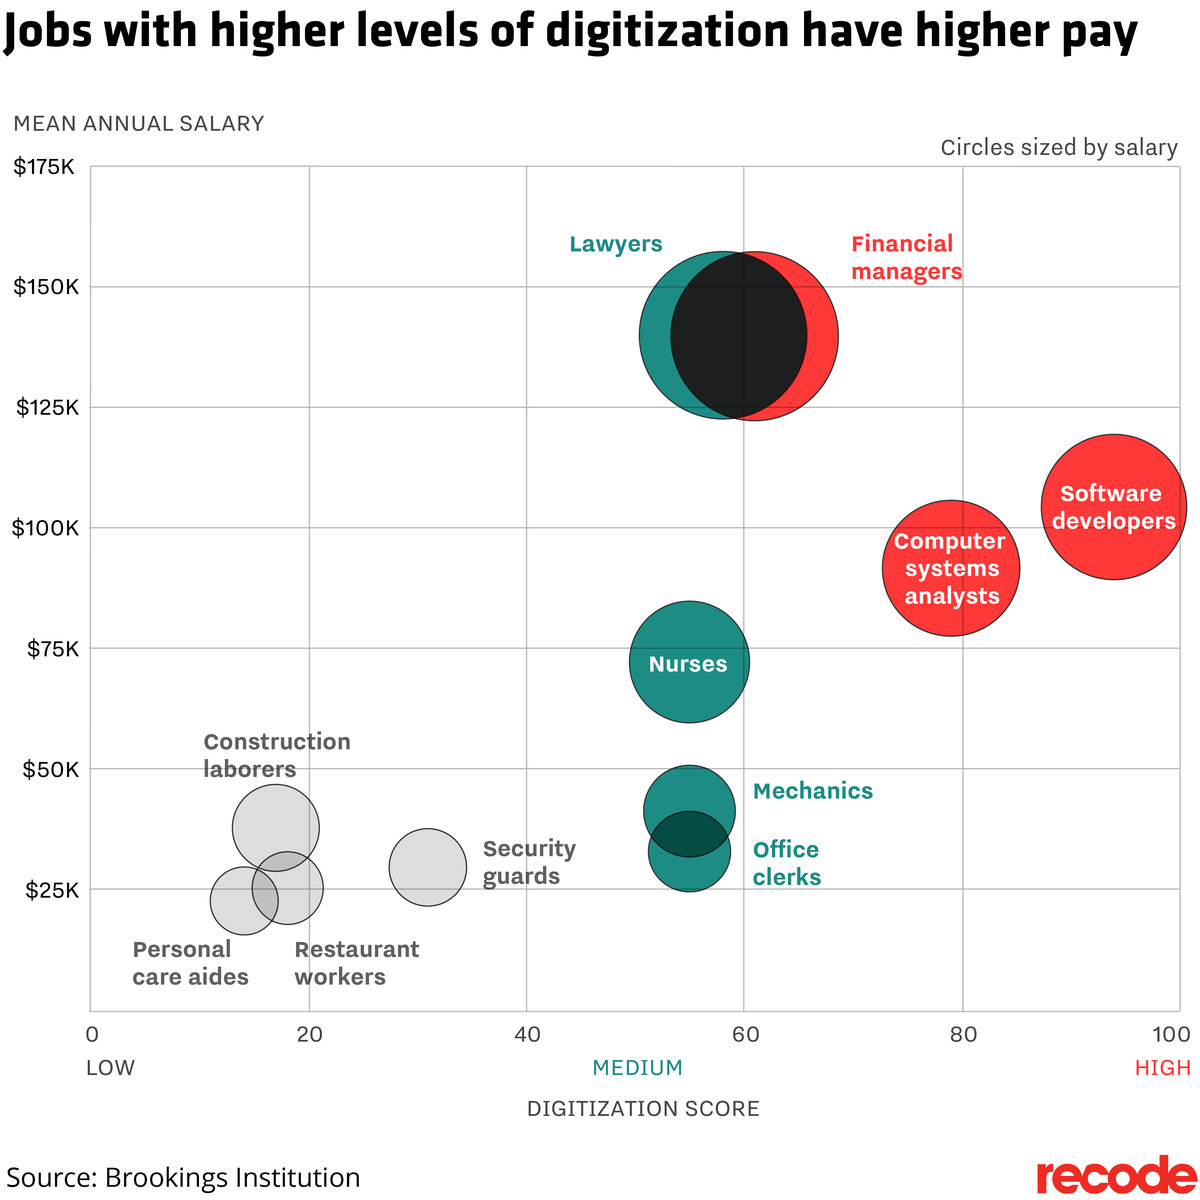 digitization scores for select job types